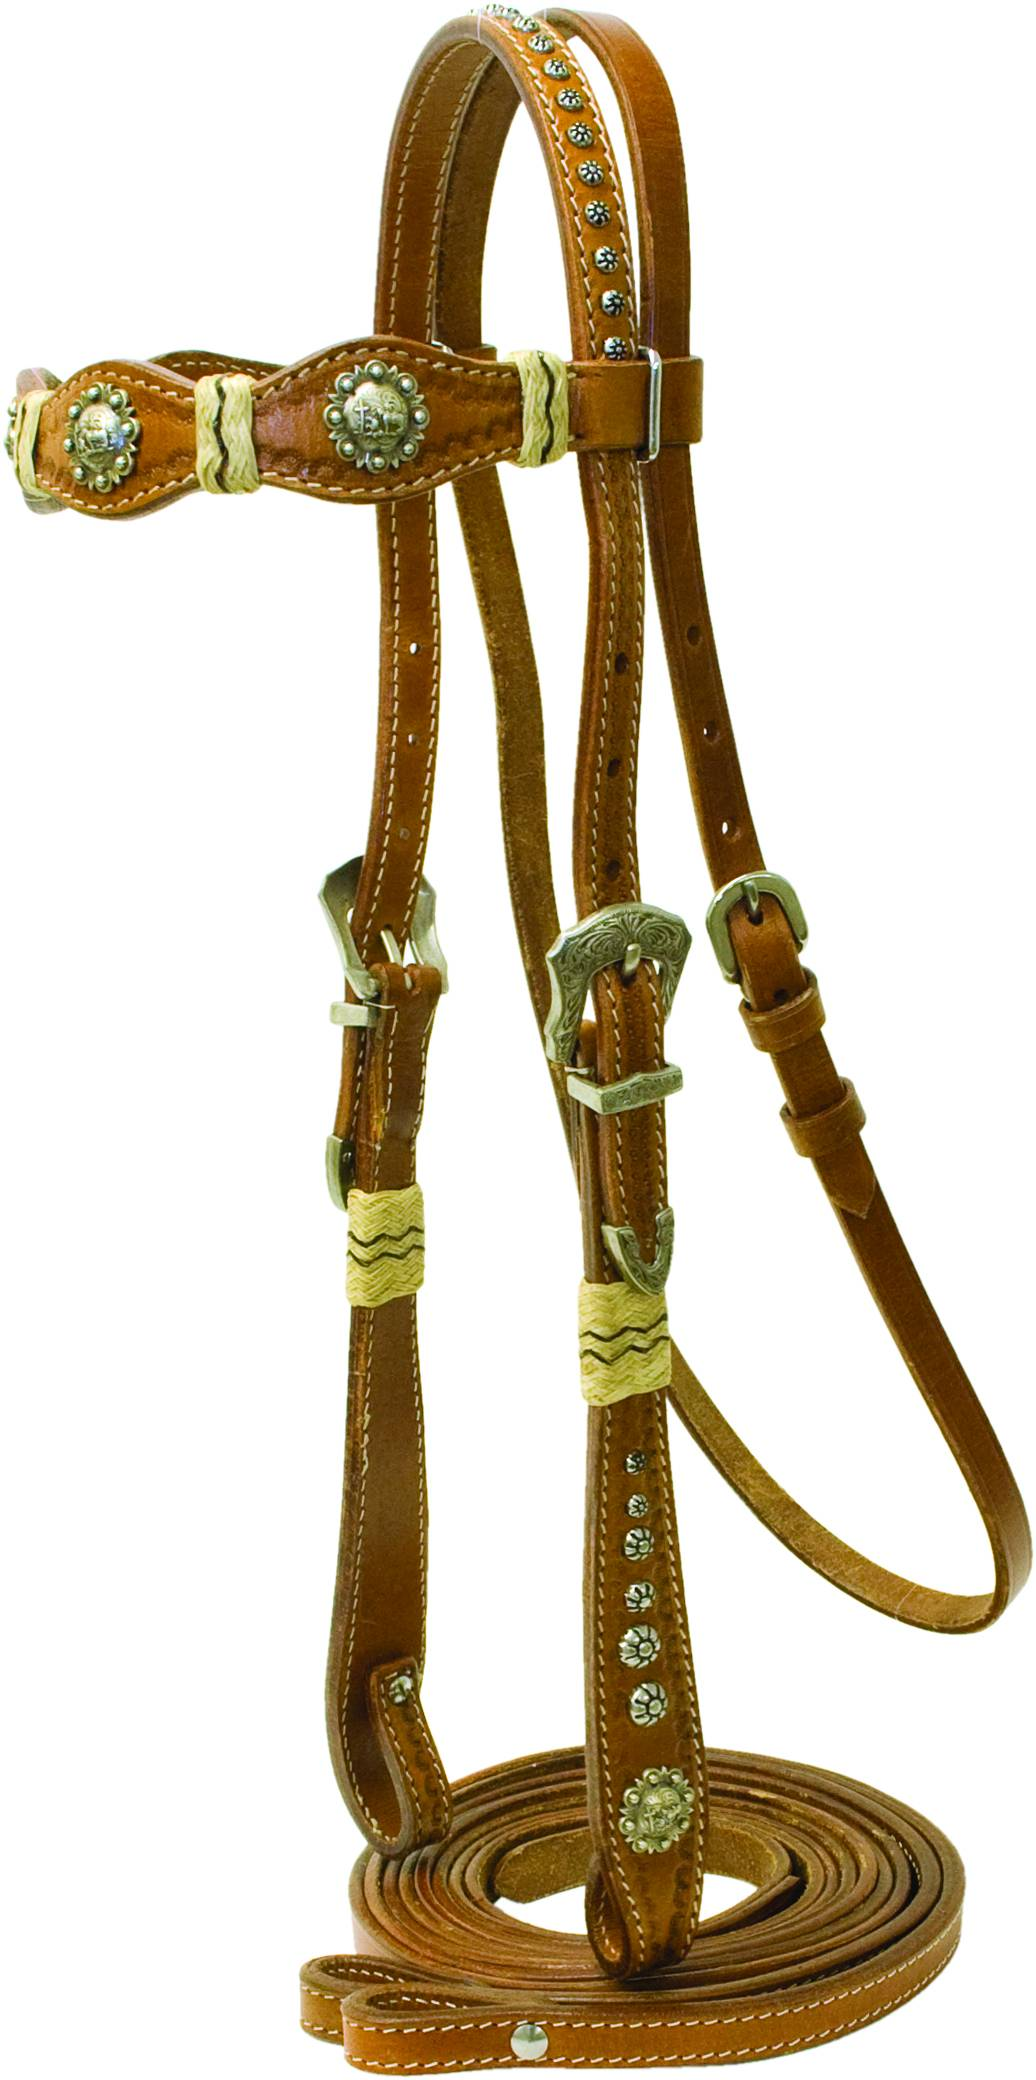 Cowboy Pro Scalloped Brow Bridle with Praying Cowboy Conchos